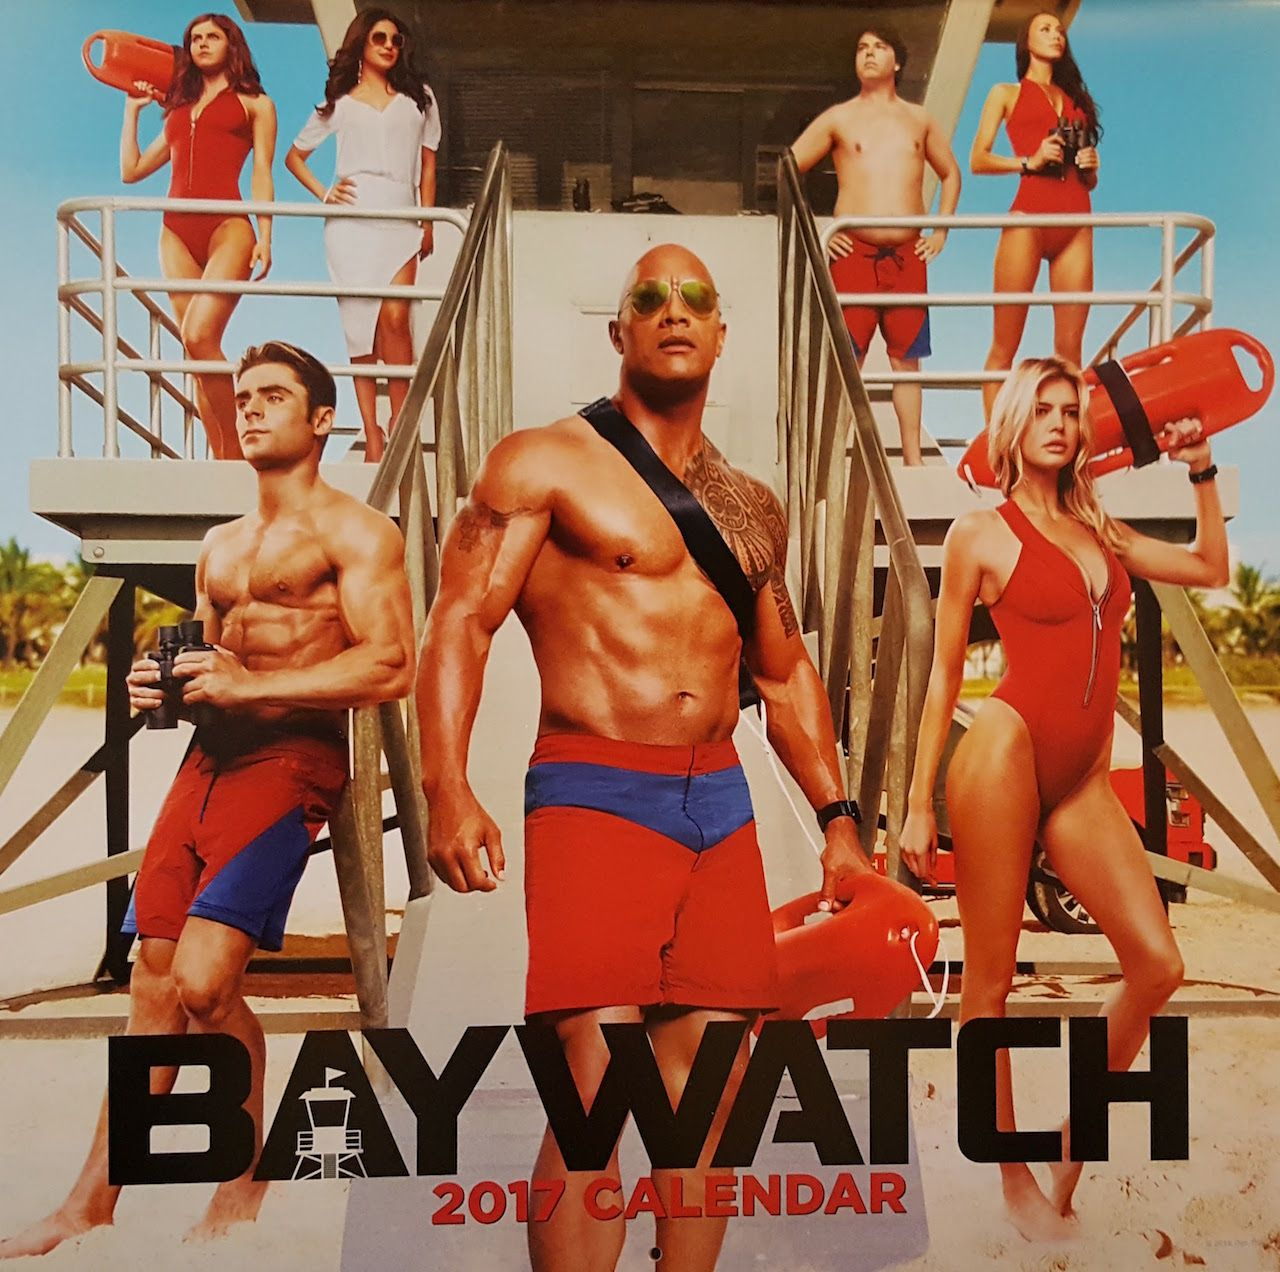 Photos From The Baywatch Movie 2017 Calendar Will Make You Want To Hit The Gym Geektyrant Baywatch Movie Baywatch Baywatch 2017